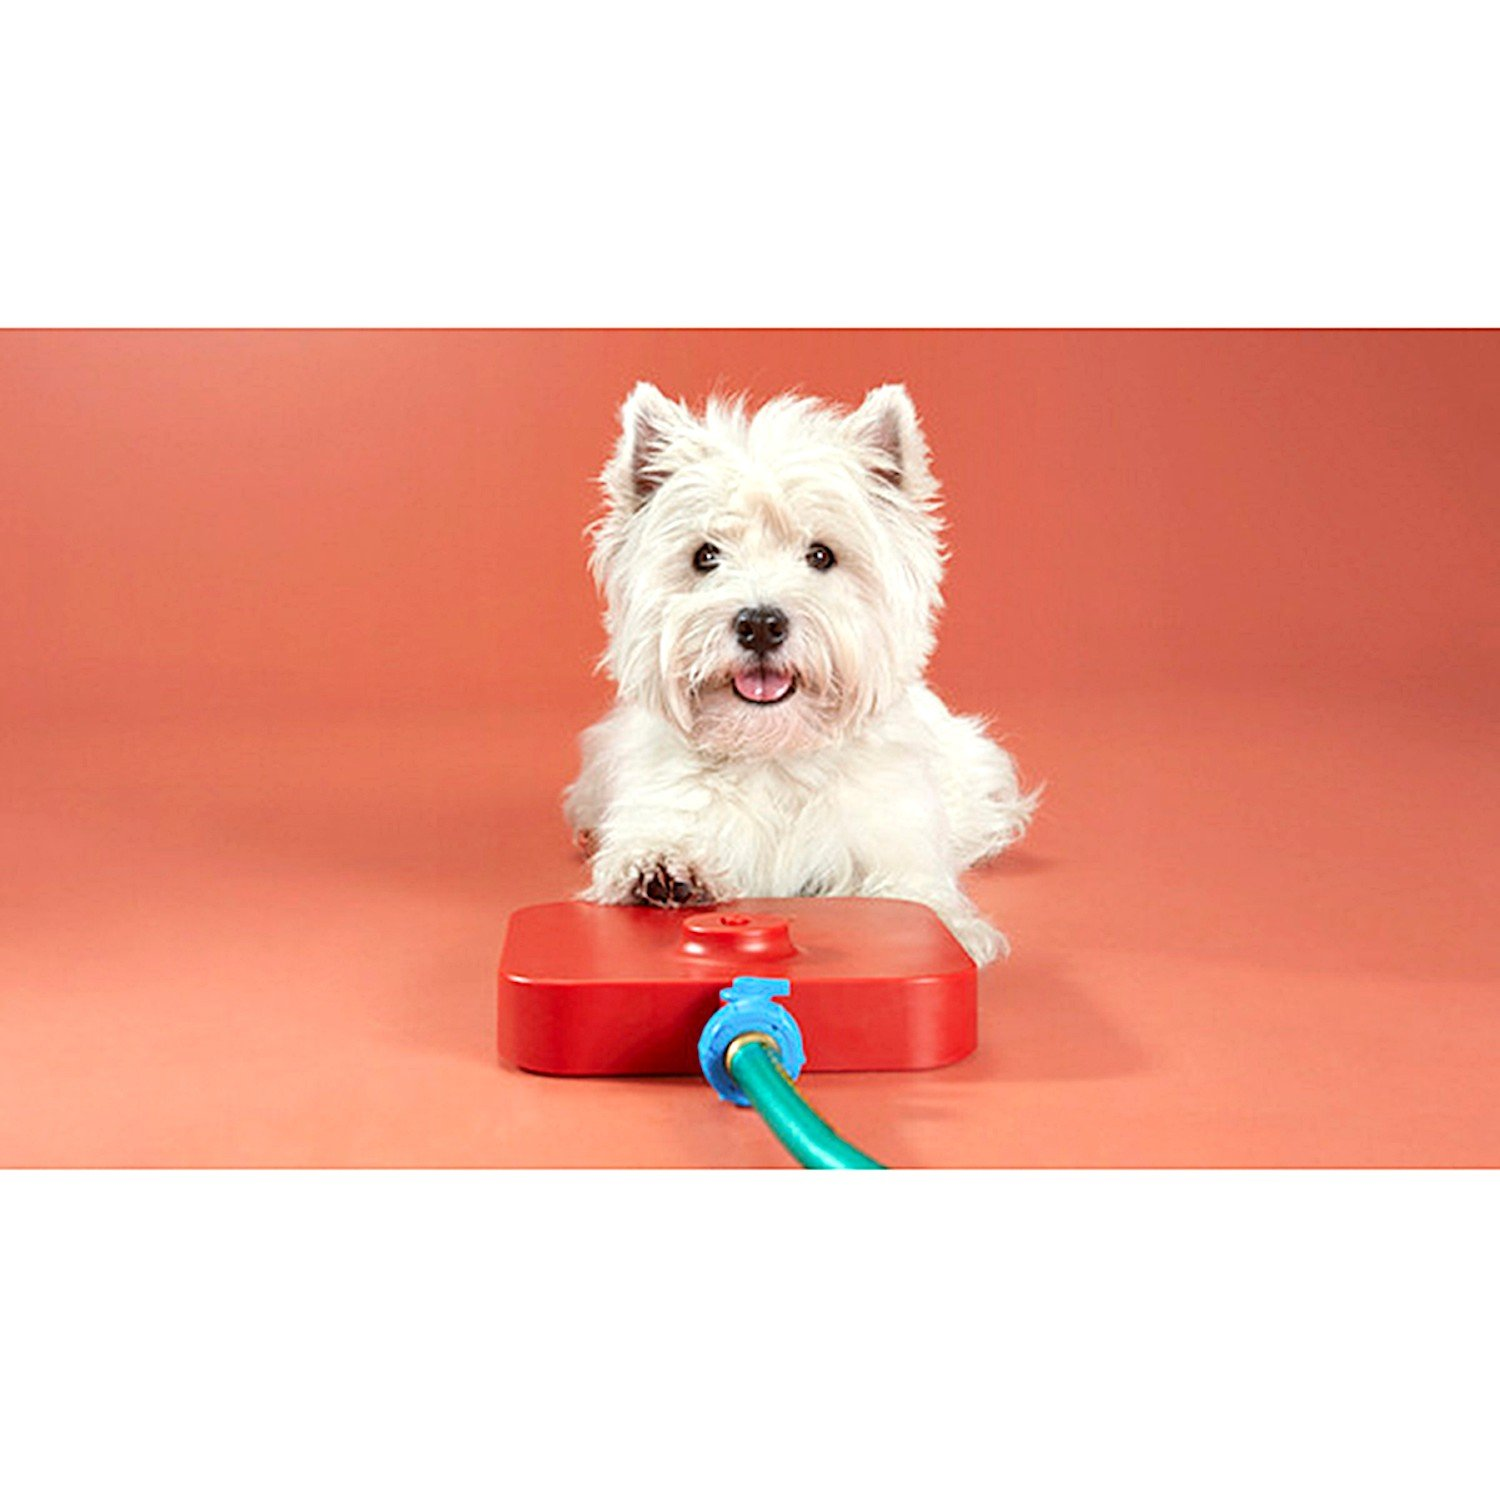 Quirky Viatek Pawcet Pet Fountain -Pressure Pedal Activated Pet Waterer for Dogs & Cats